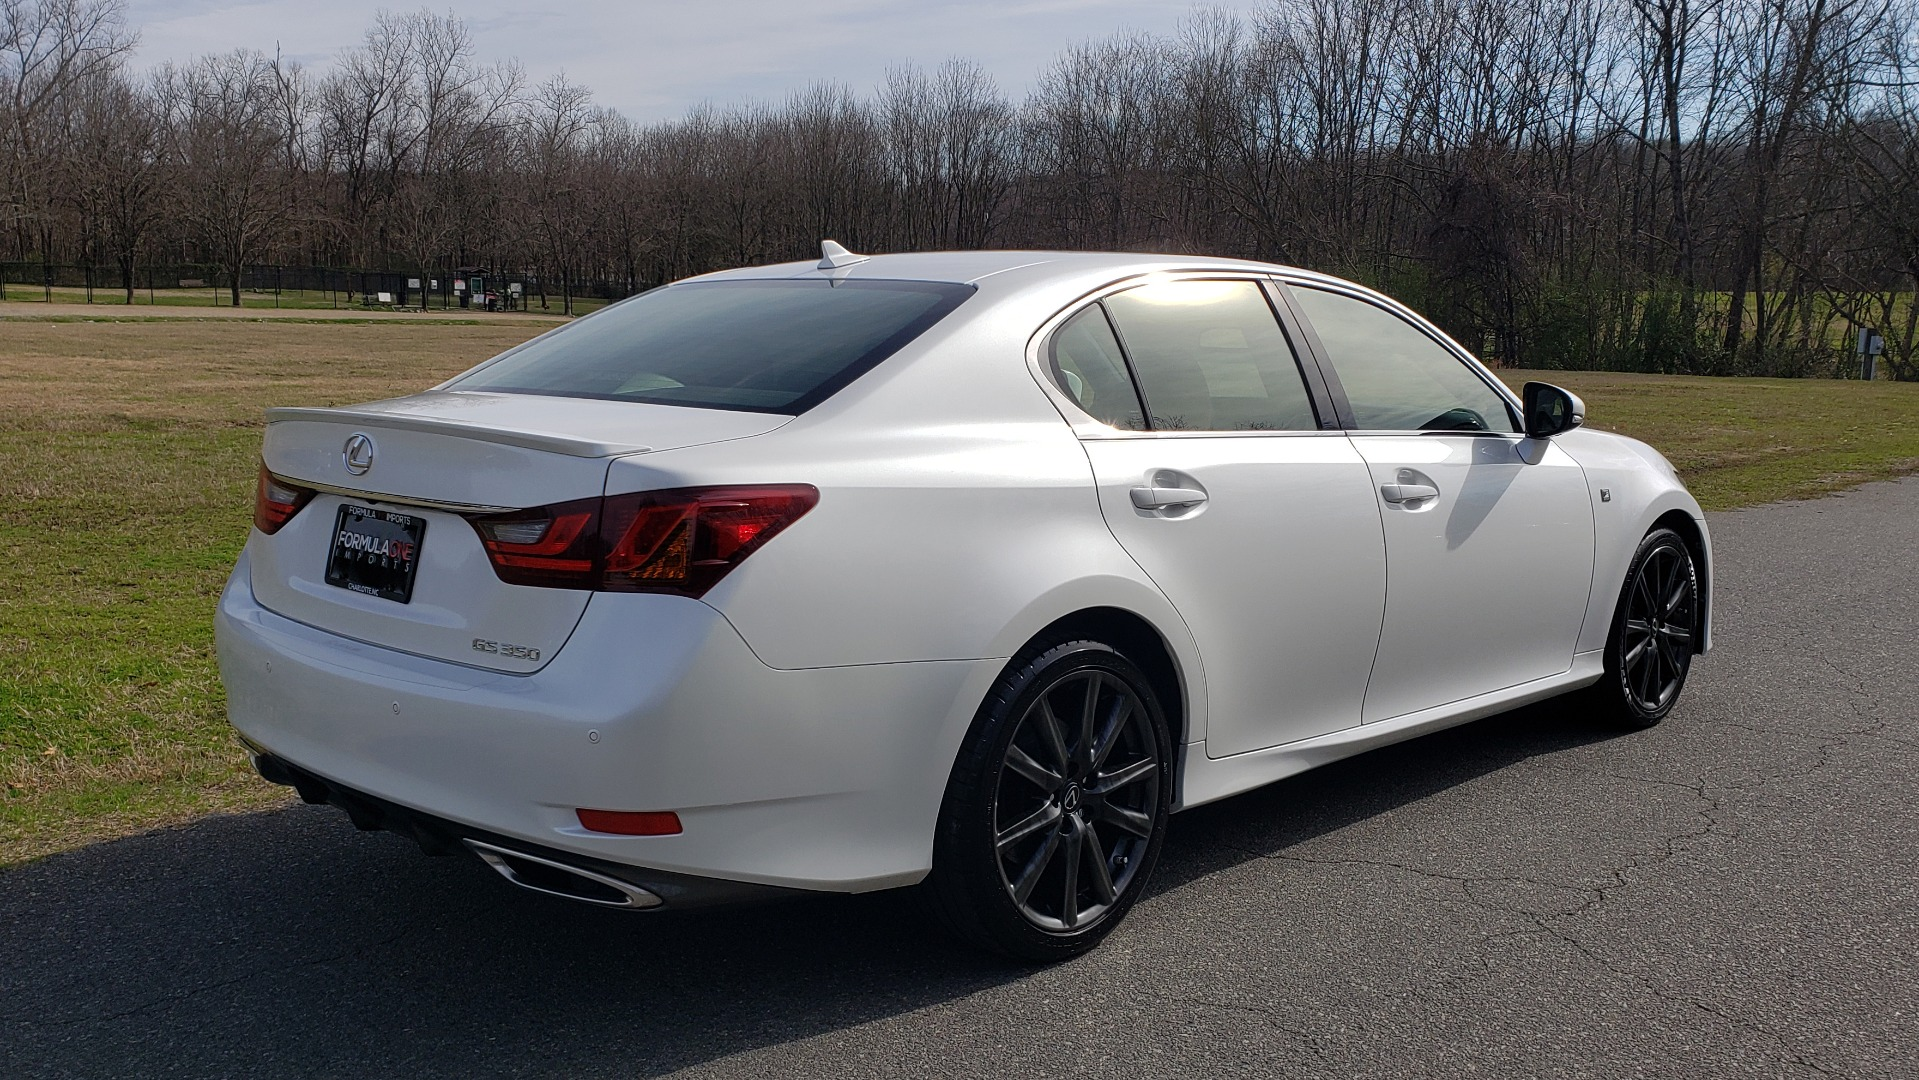 Used 2013 Lexus GS 350 F-SPORT / NAV / SUNROOF / BSM / PRK ASST / REARVIEW for sale Sold at Formula Imports in Charlotte NC 28227 6